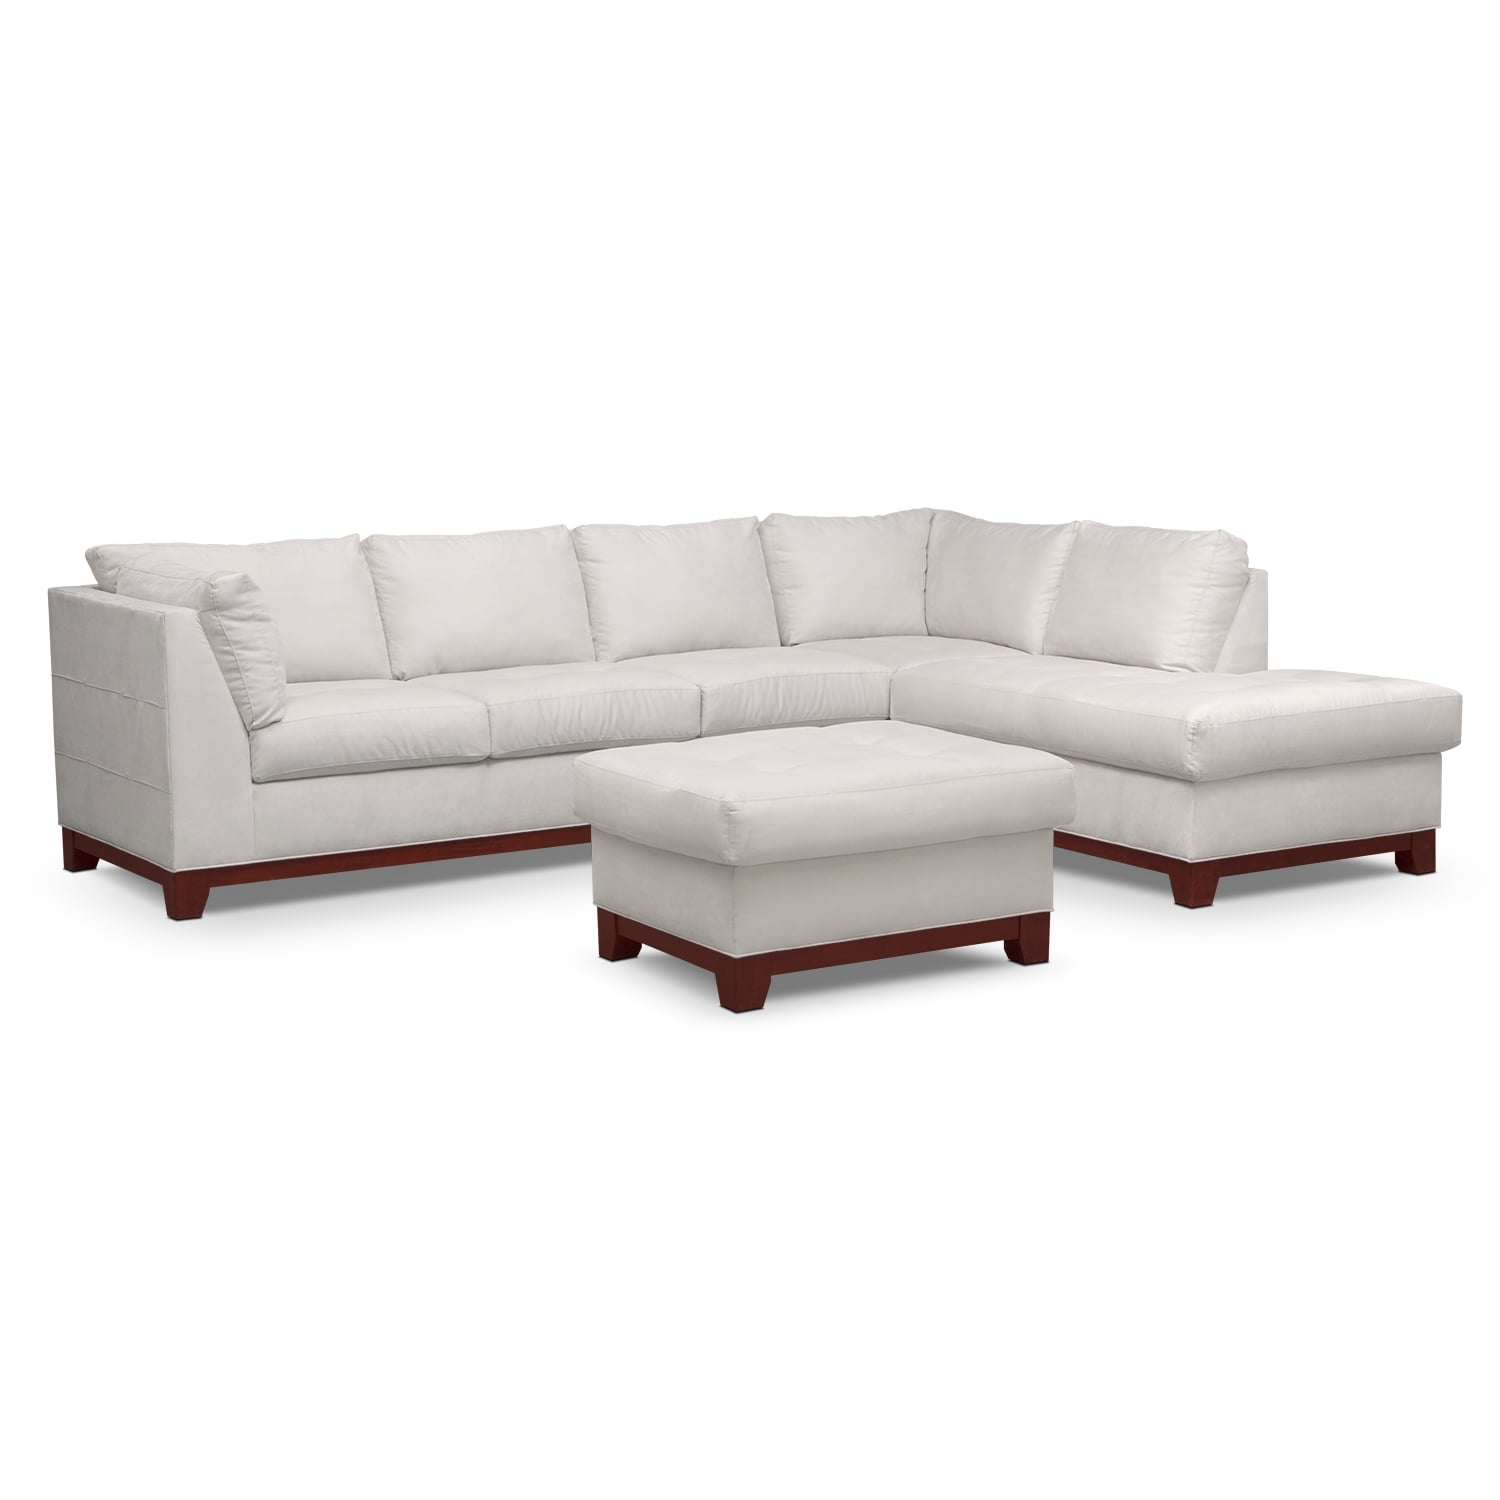 Soho 2-Piece Sectional with Right-Facing Chaise and Ottoman - Cement